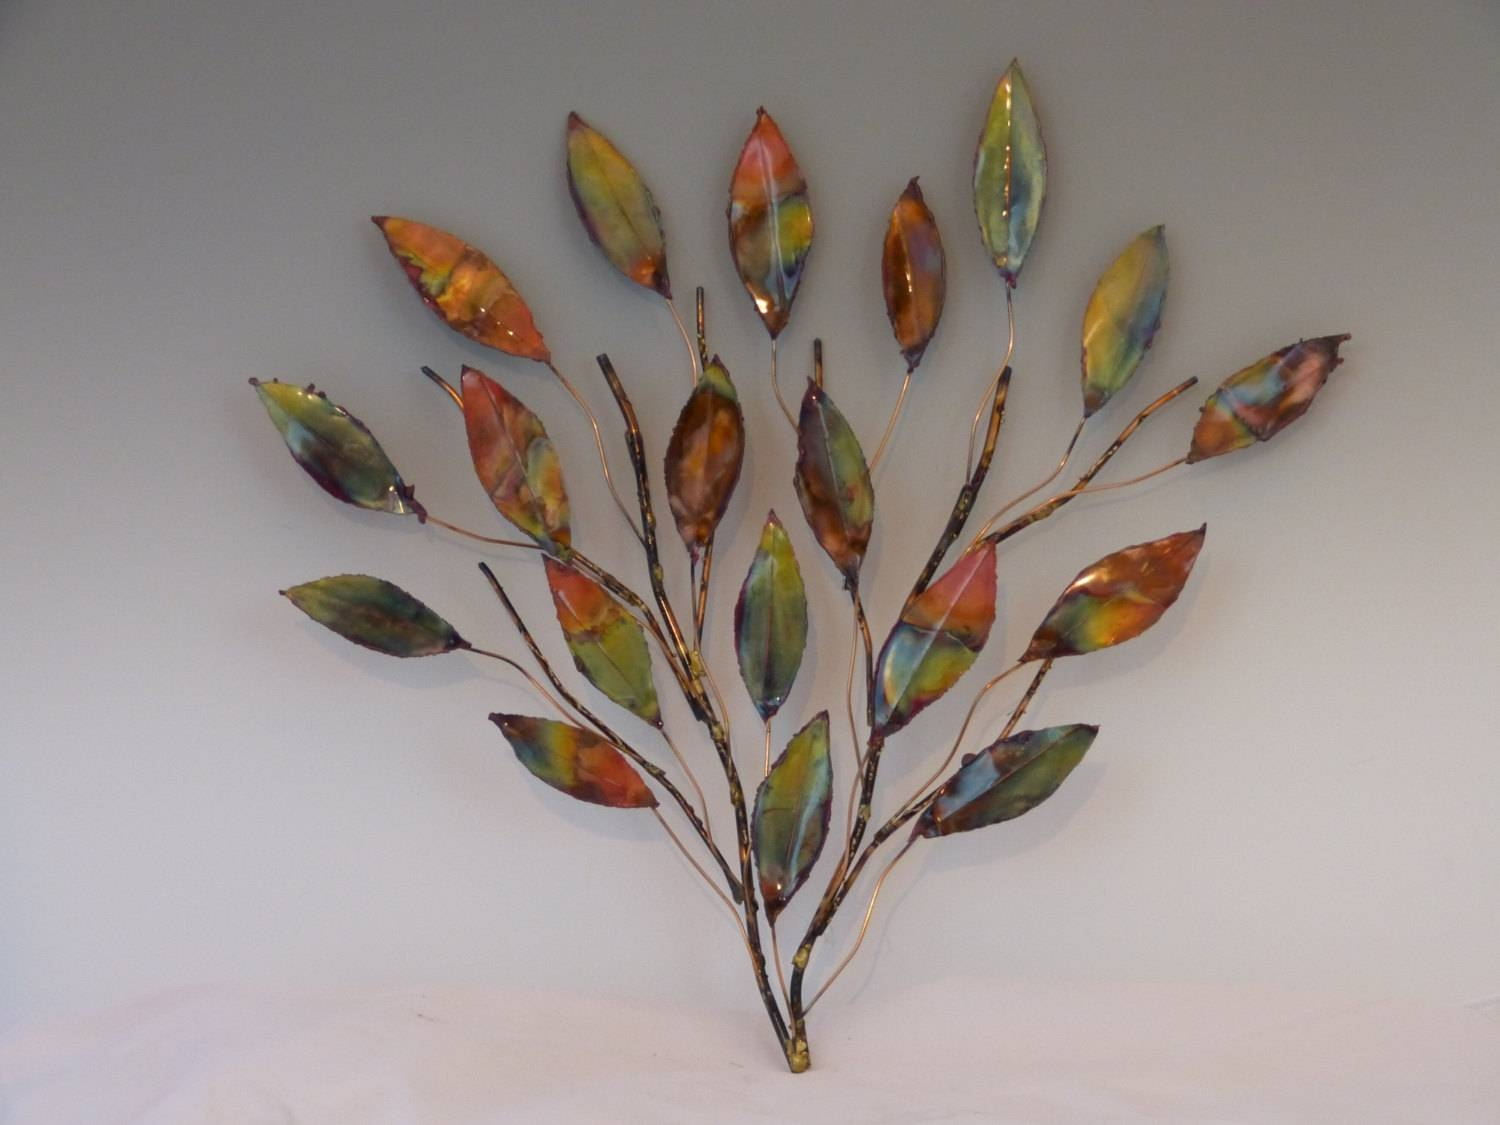 Copper Branch Sculpture: Metal Sculpture Home Decor Wall Art With Regard To Most Popular Metal Wall Art Decorating (View 3 of 20)